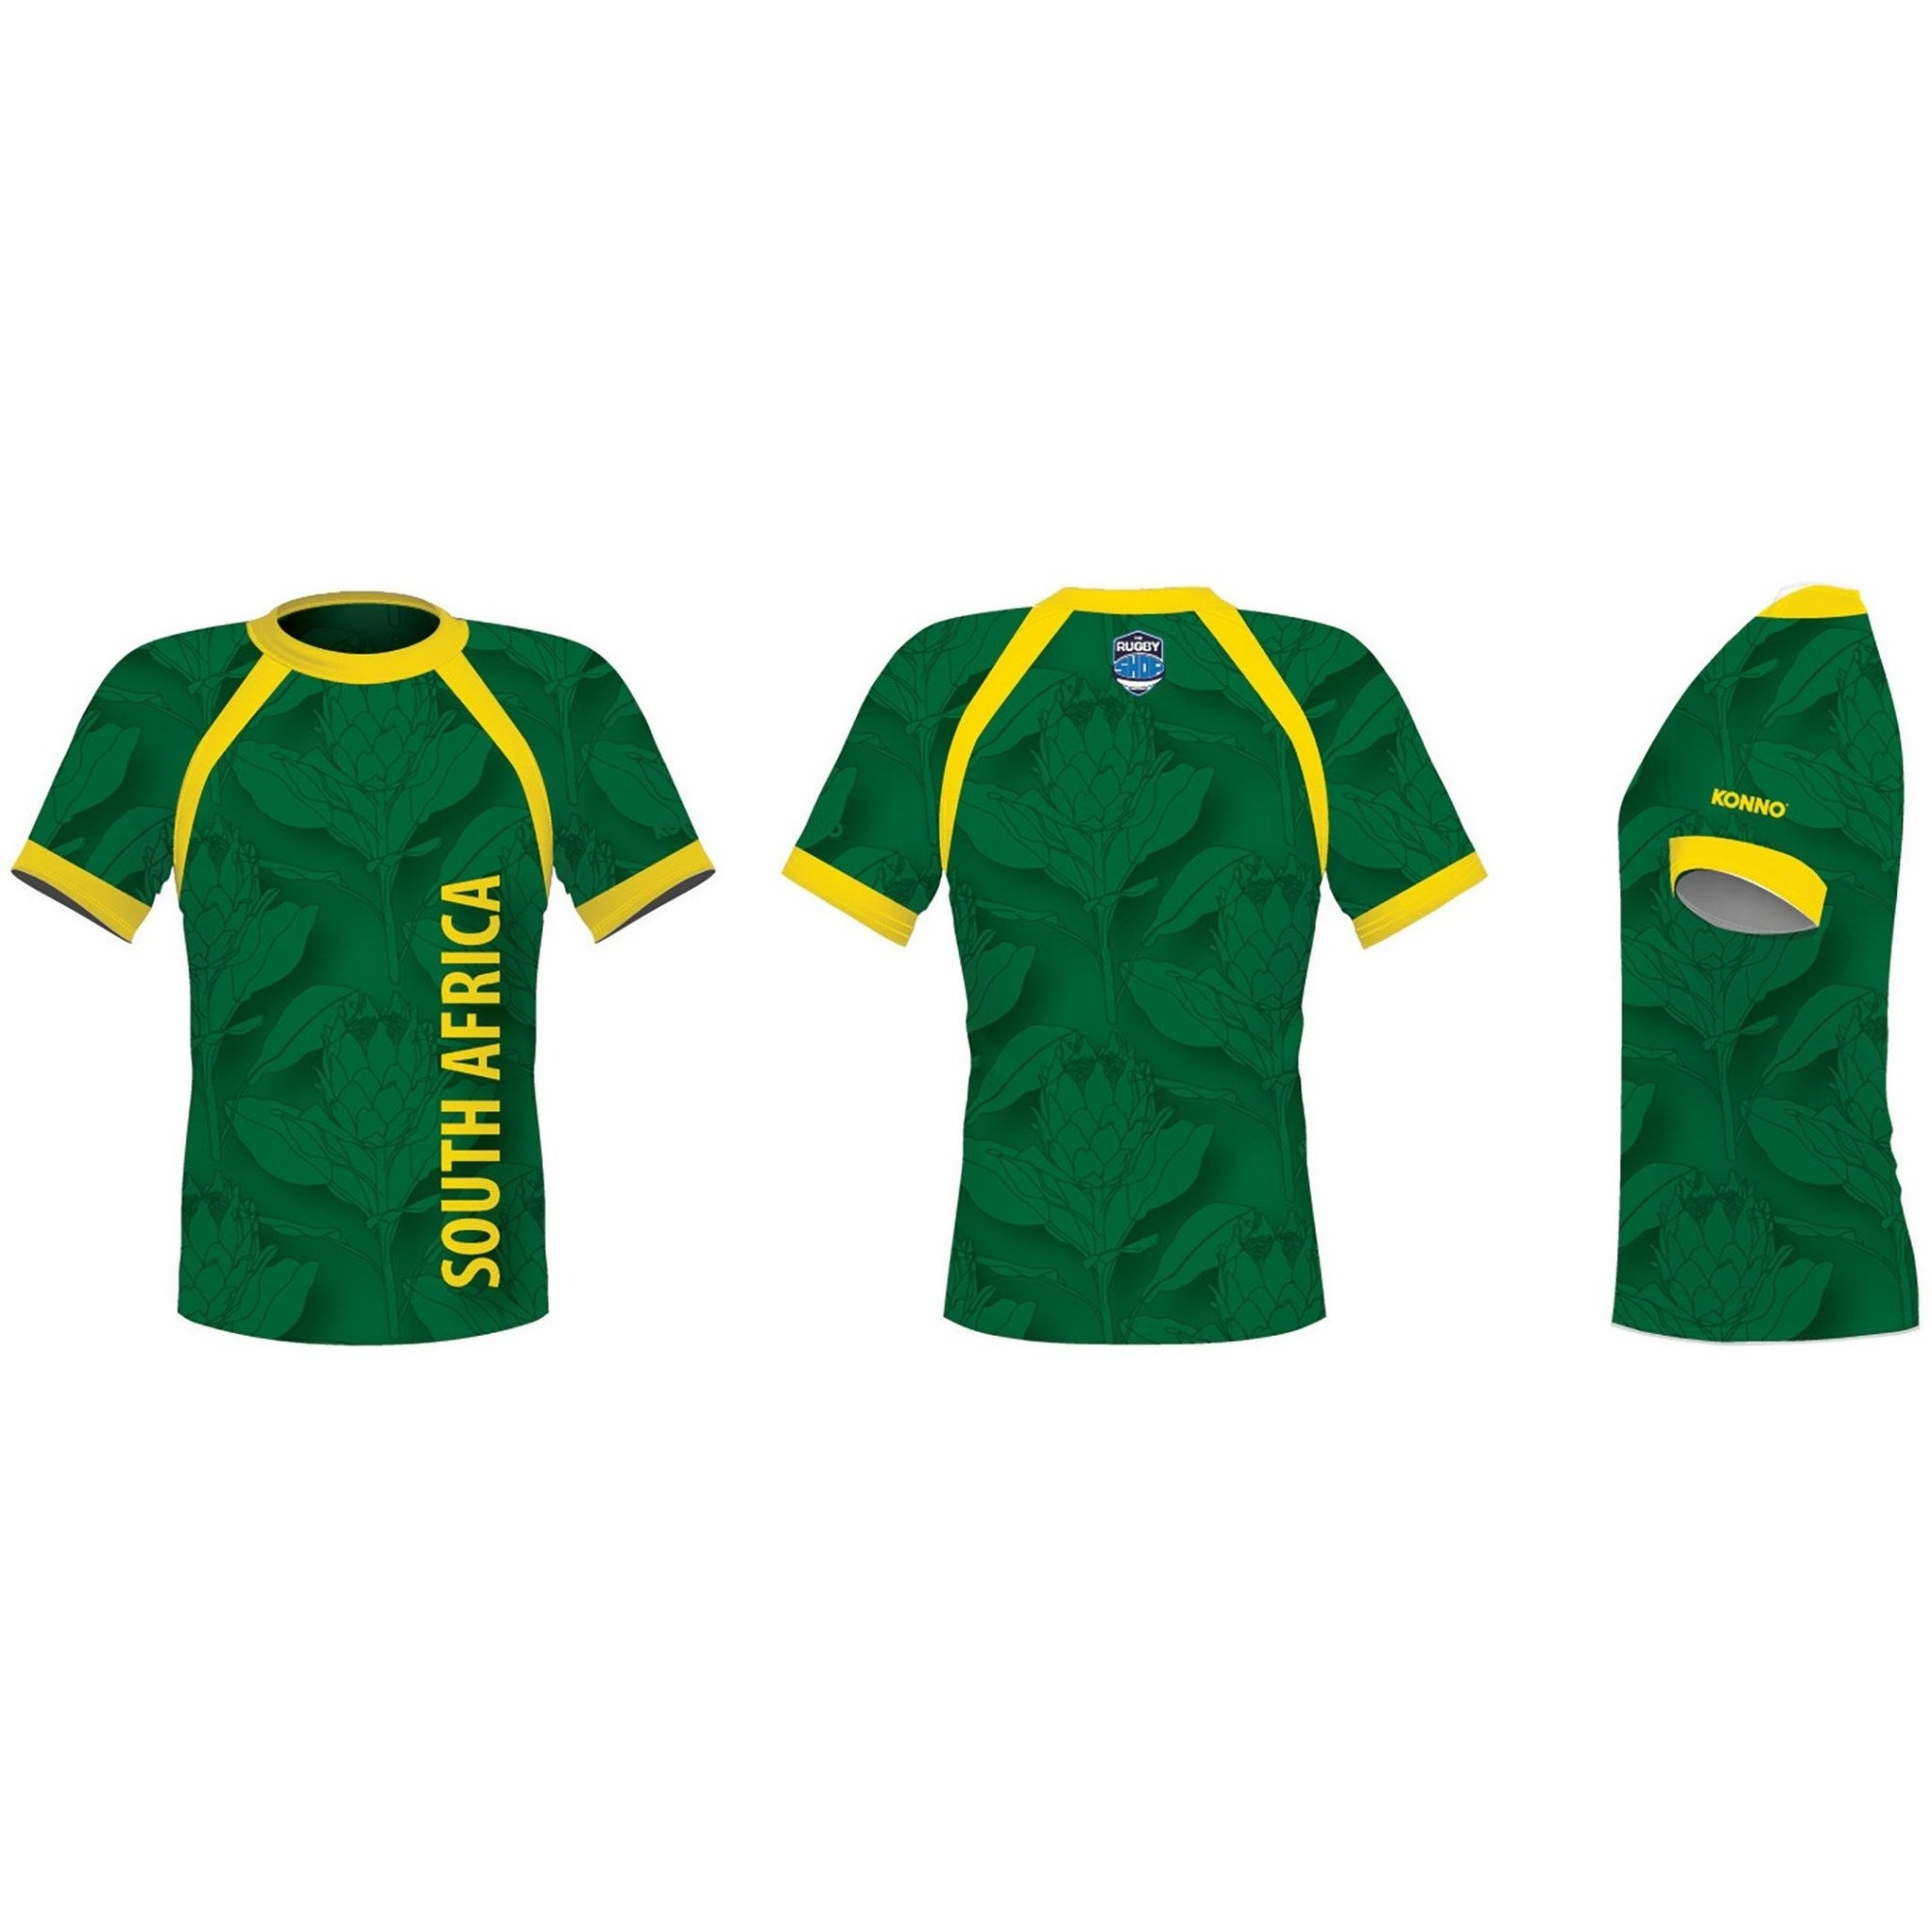 KONNO International Supporter Tee - South Africa - www.therugbyshop.com www.therugbyshop.com KONNO TEE KONNO International Supporter Tee - South Africa